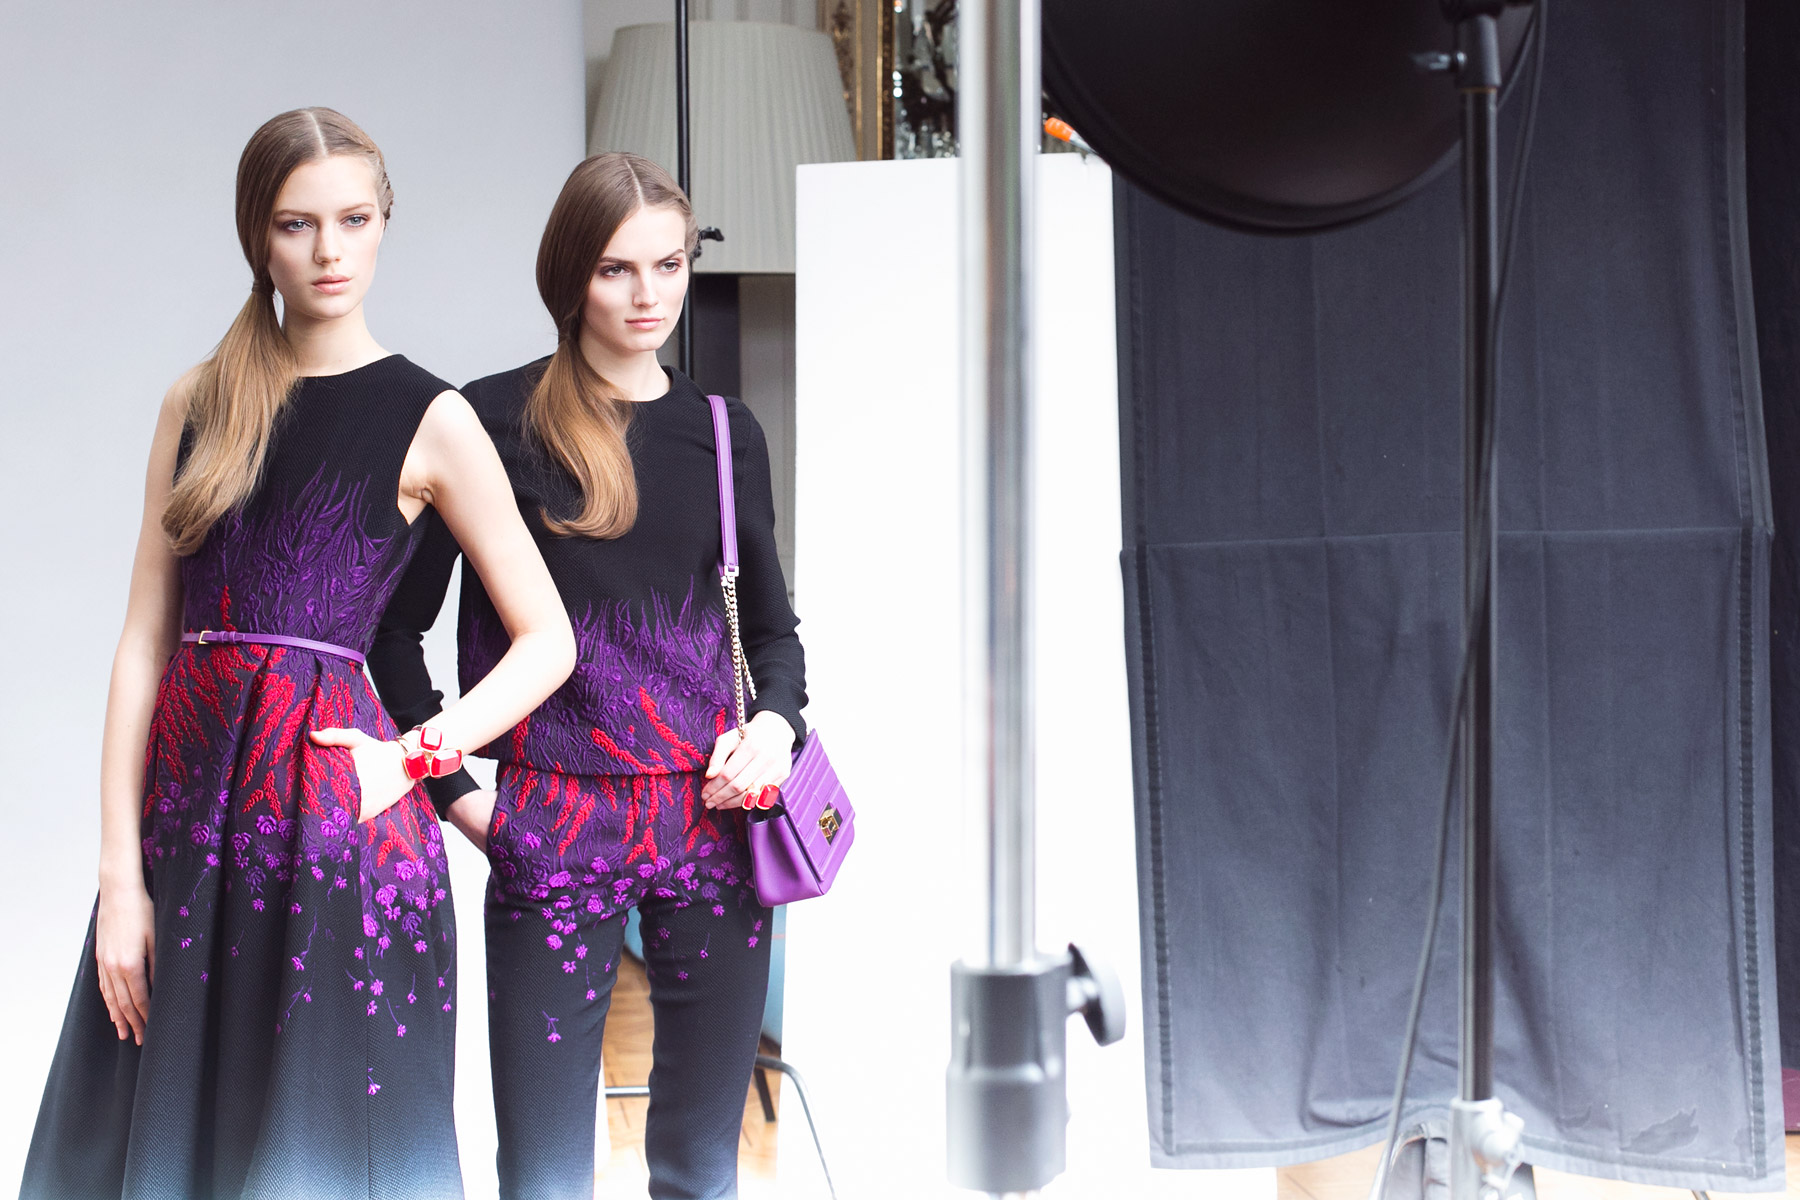 Behind the Scenes of Elie Saab Pre-Fall 2015 photo by Carin Olsson (Paris in Four Months)